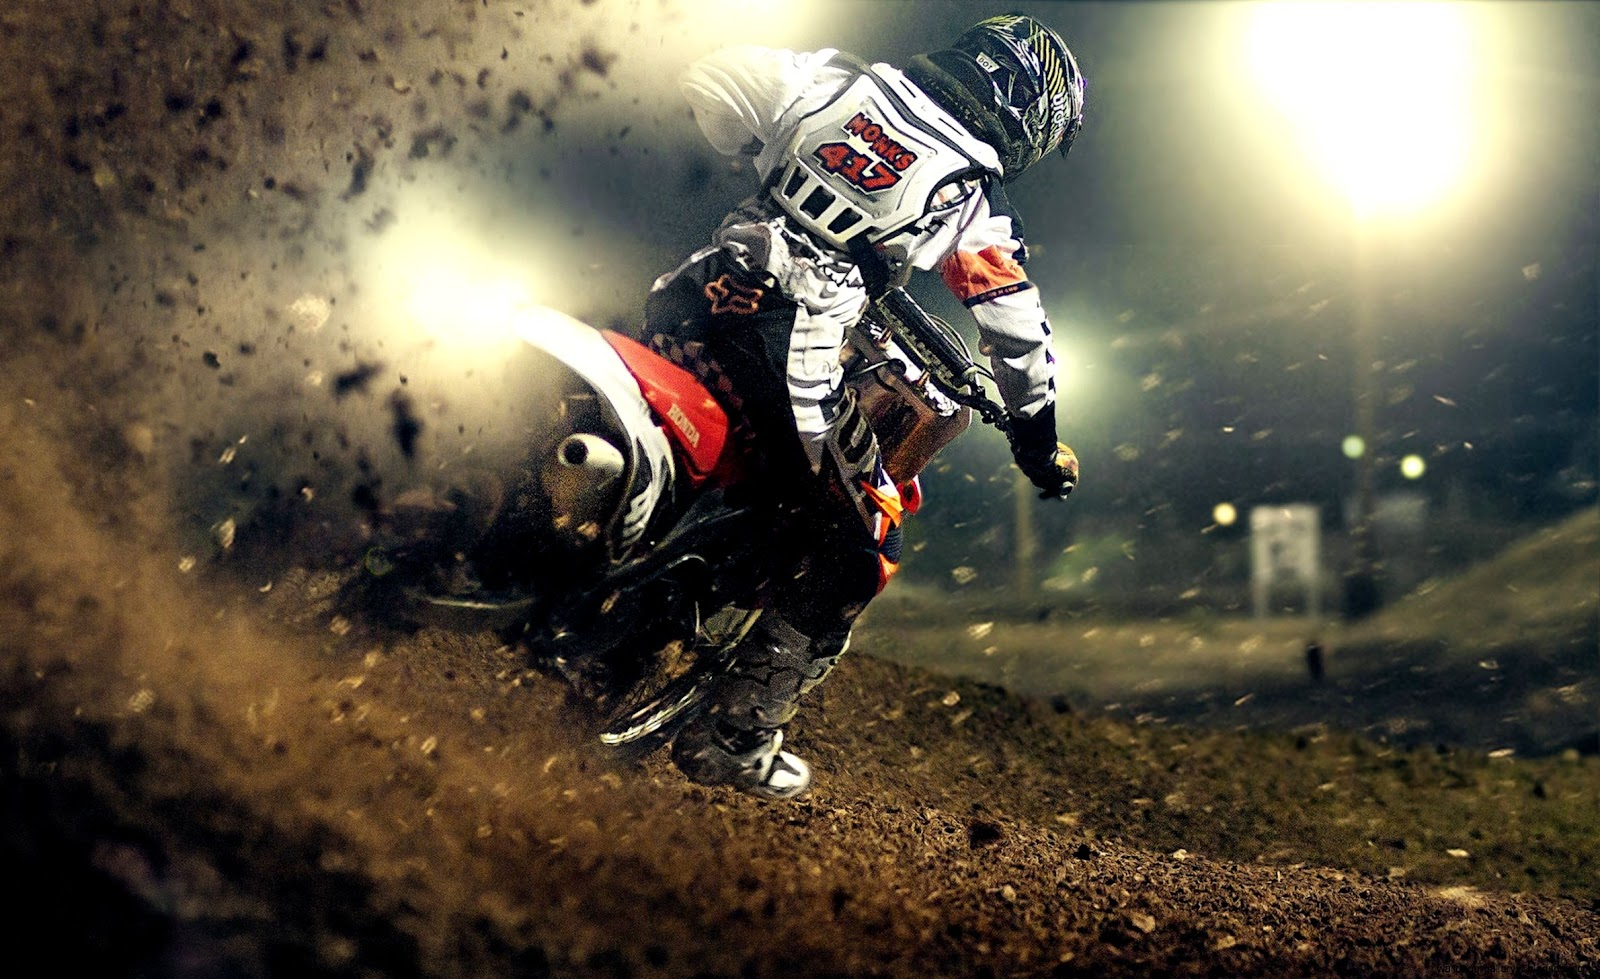 Motocross Wallpaper Hd Wide Wallpaper Gallery HD Wallpapers Download Free Images Wallpaper [1000image.com]